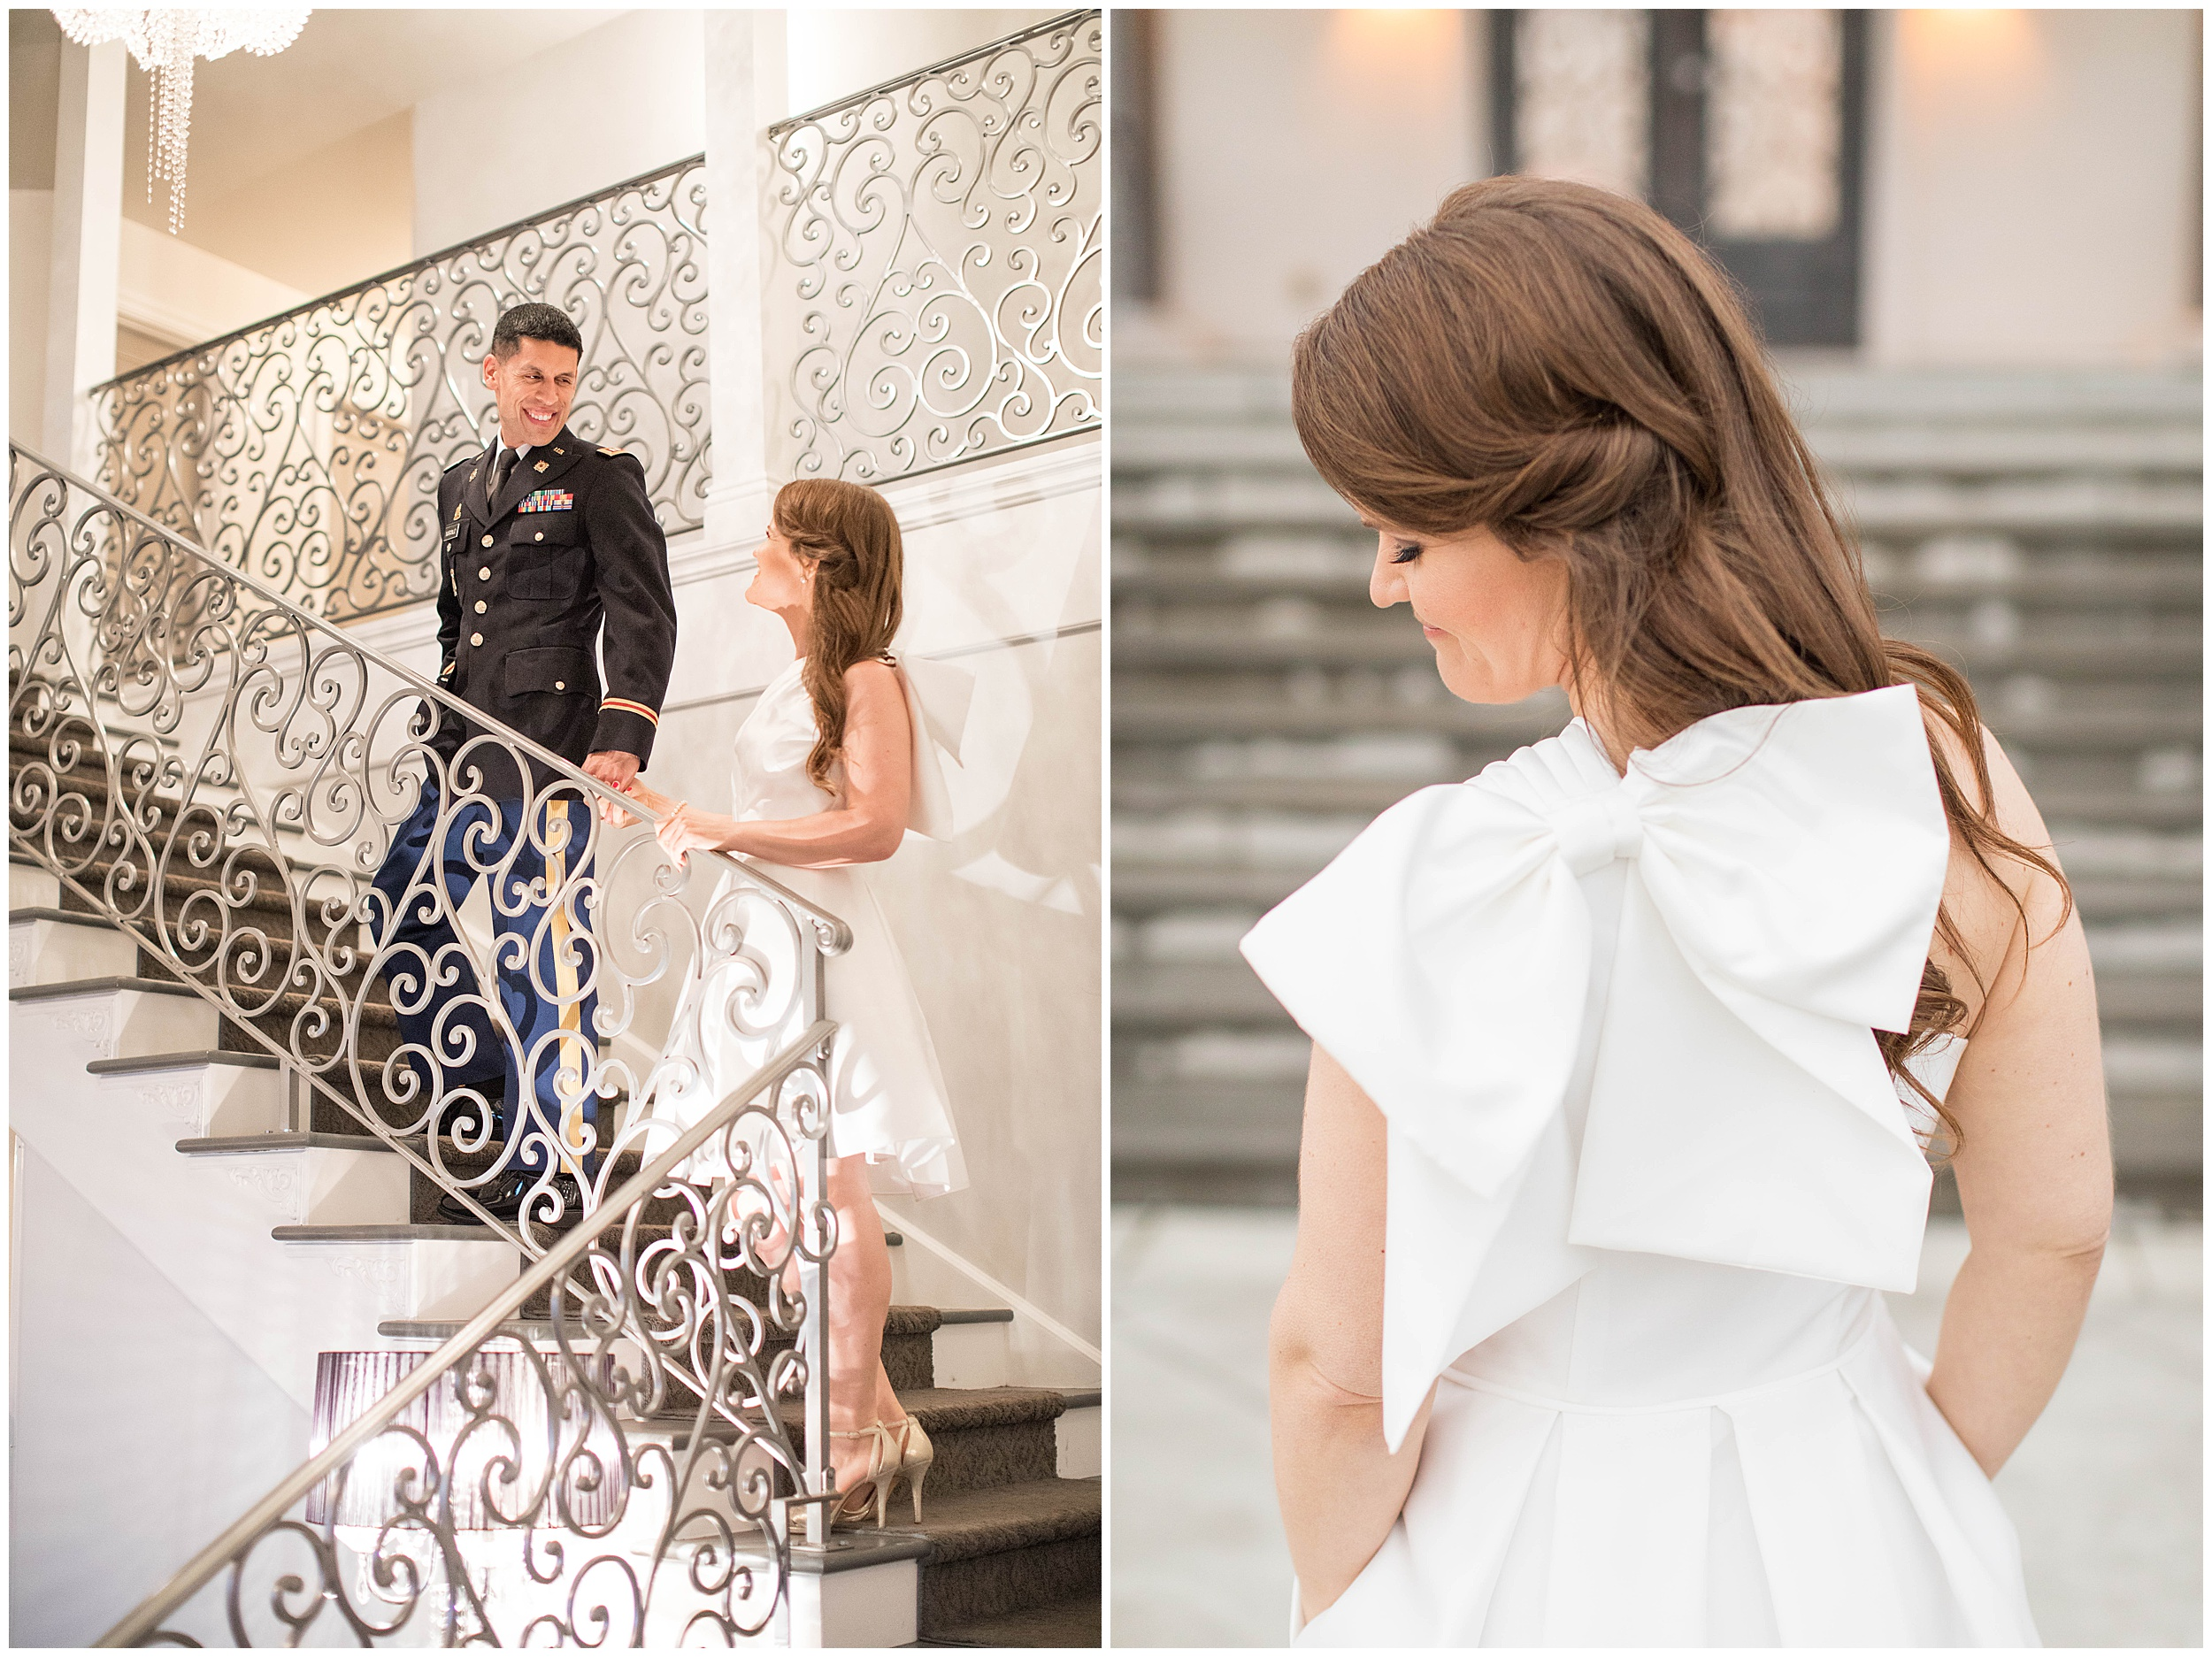 Willow Heights Mansion-San Jose Wedding Photographer-Engagement Session-Angela Sue Photography_0026.jpg